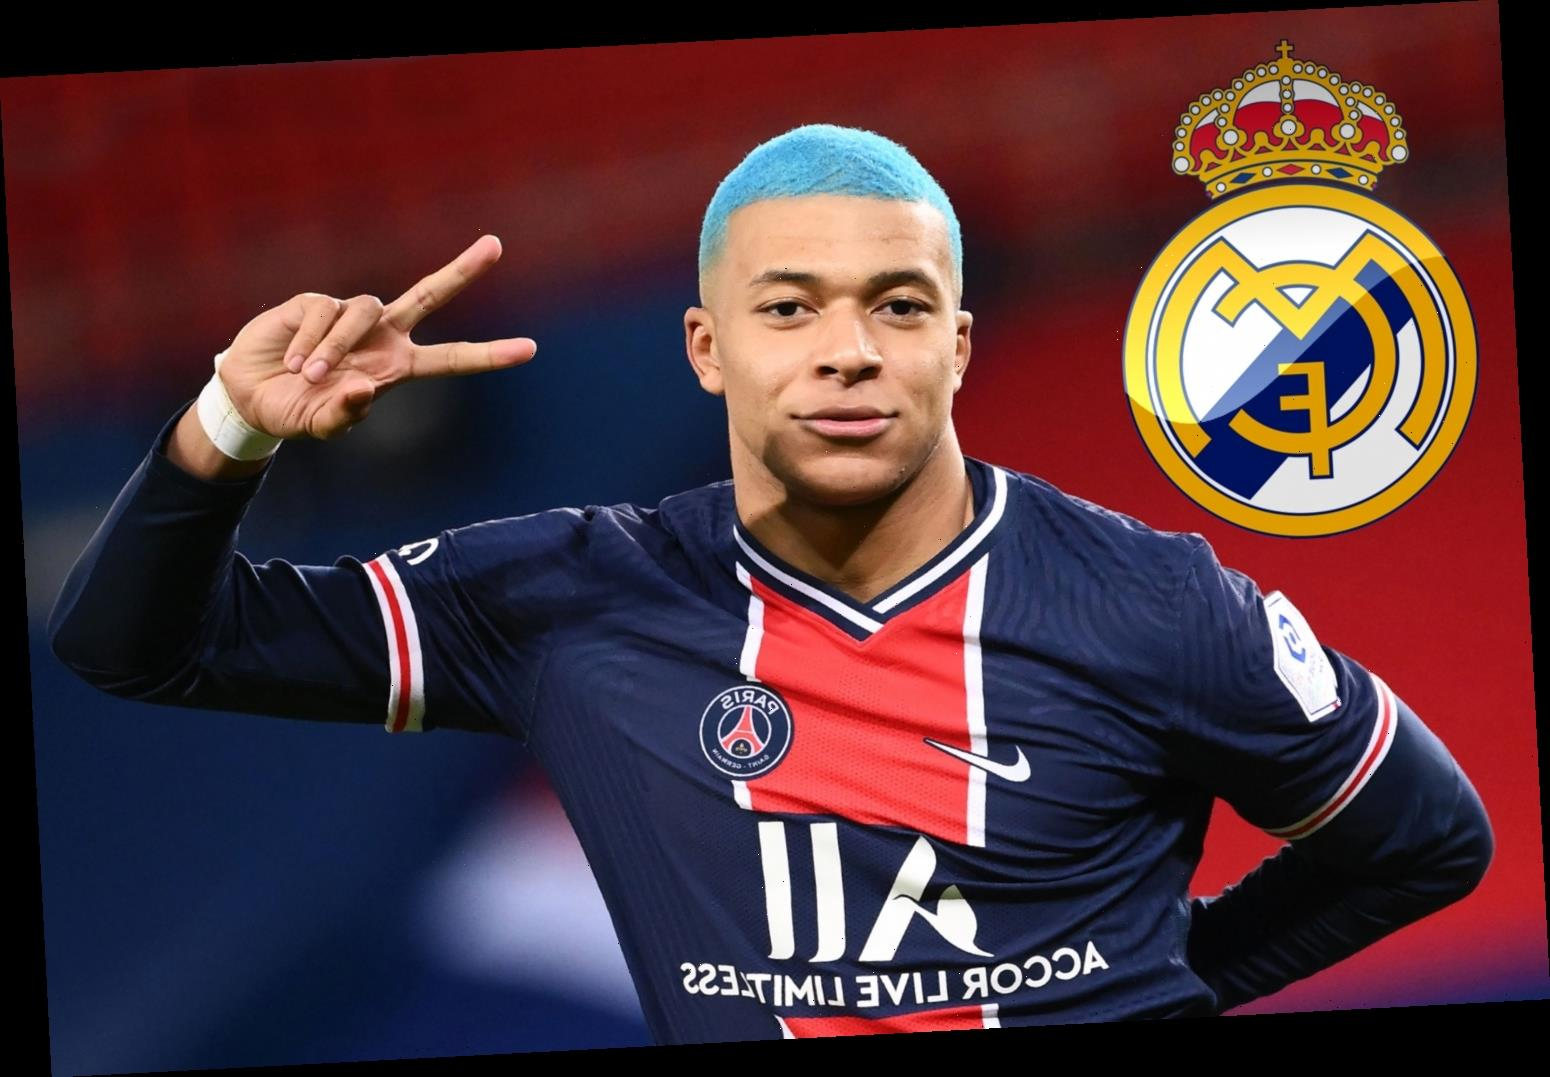 PSG may not be able to afford bumper new contract for Kylian Mbappe alerting Real Madrid to mega-money 2021 transfer